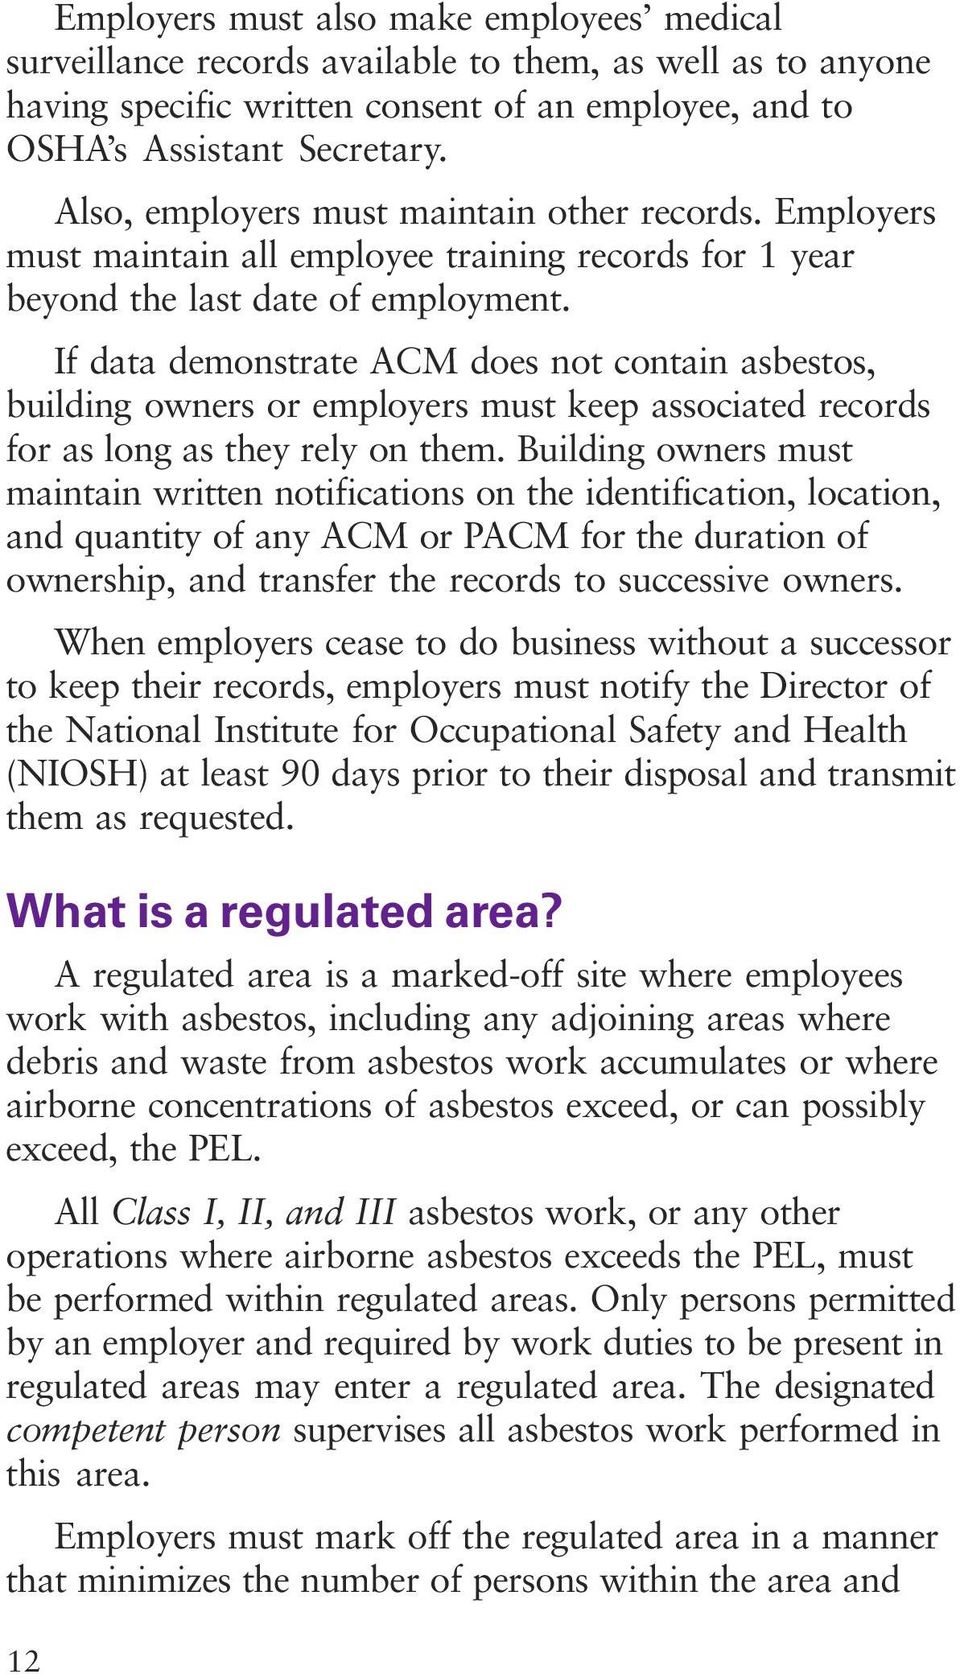 If data demonstrate ACM does not contain asbestos, building owners or employers must keep associated records for as long as they rely on them.